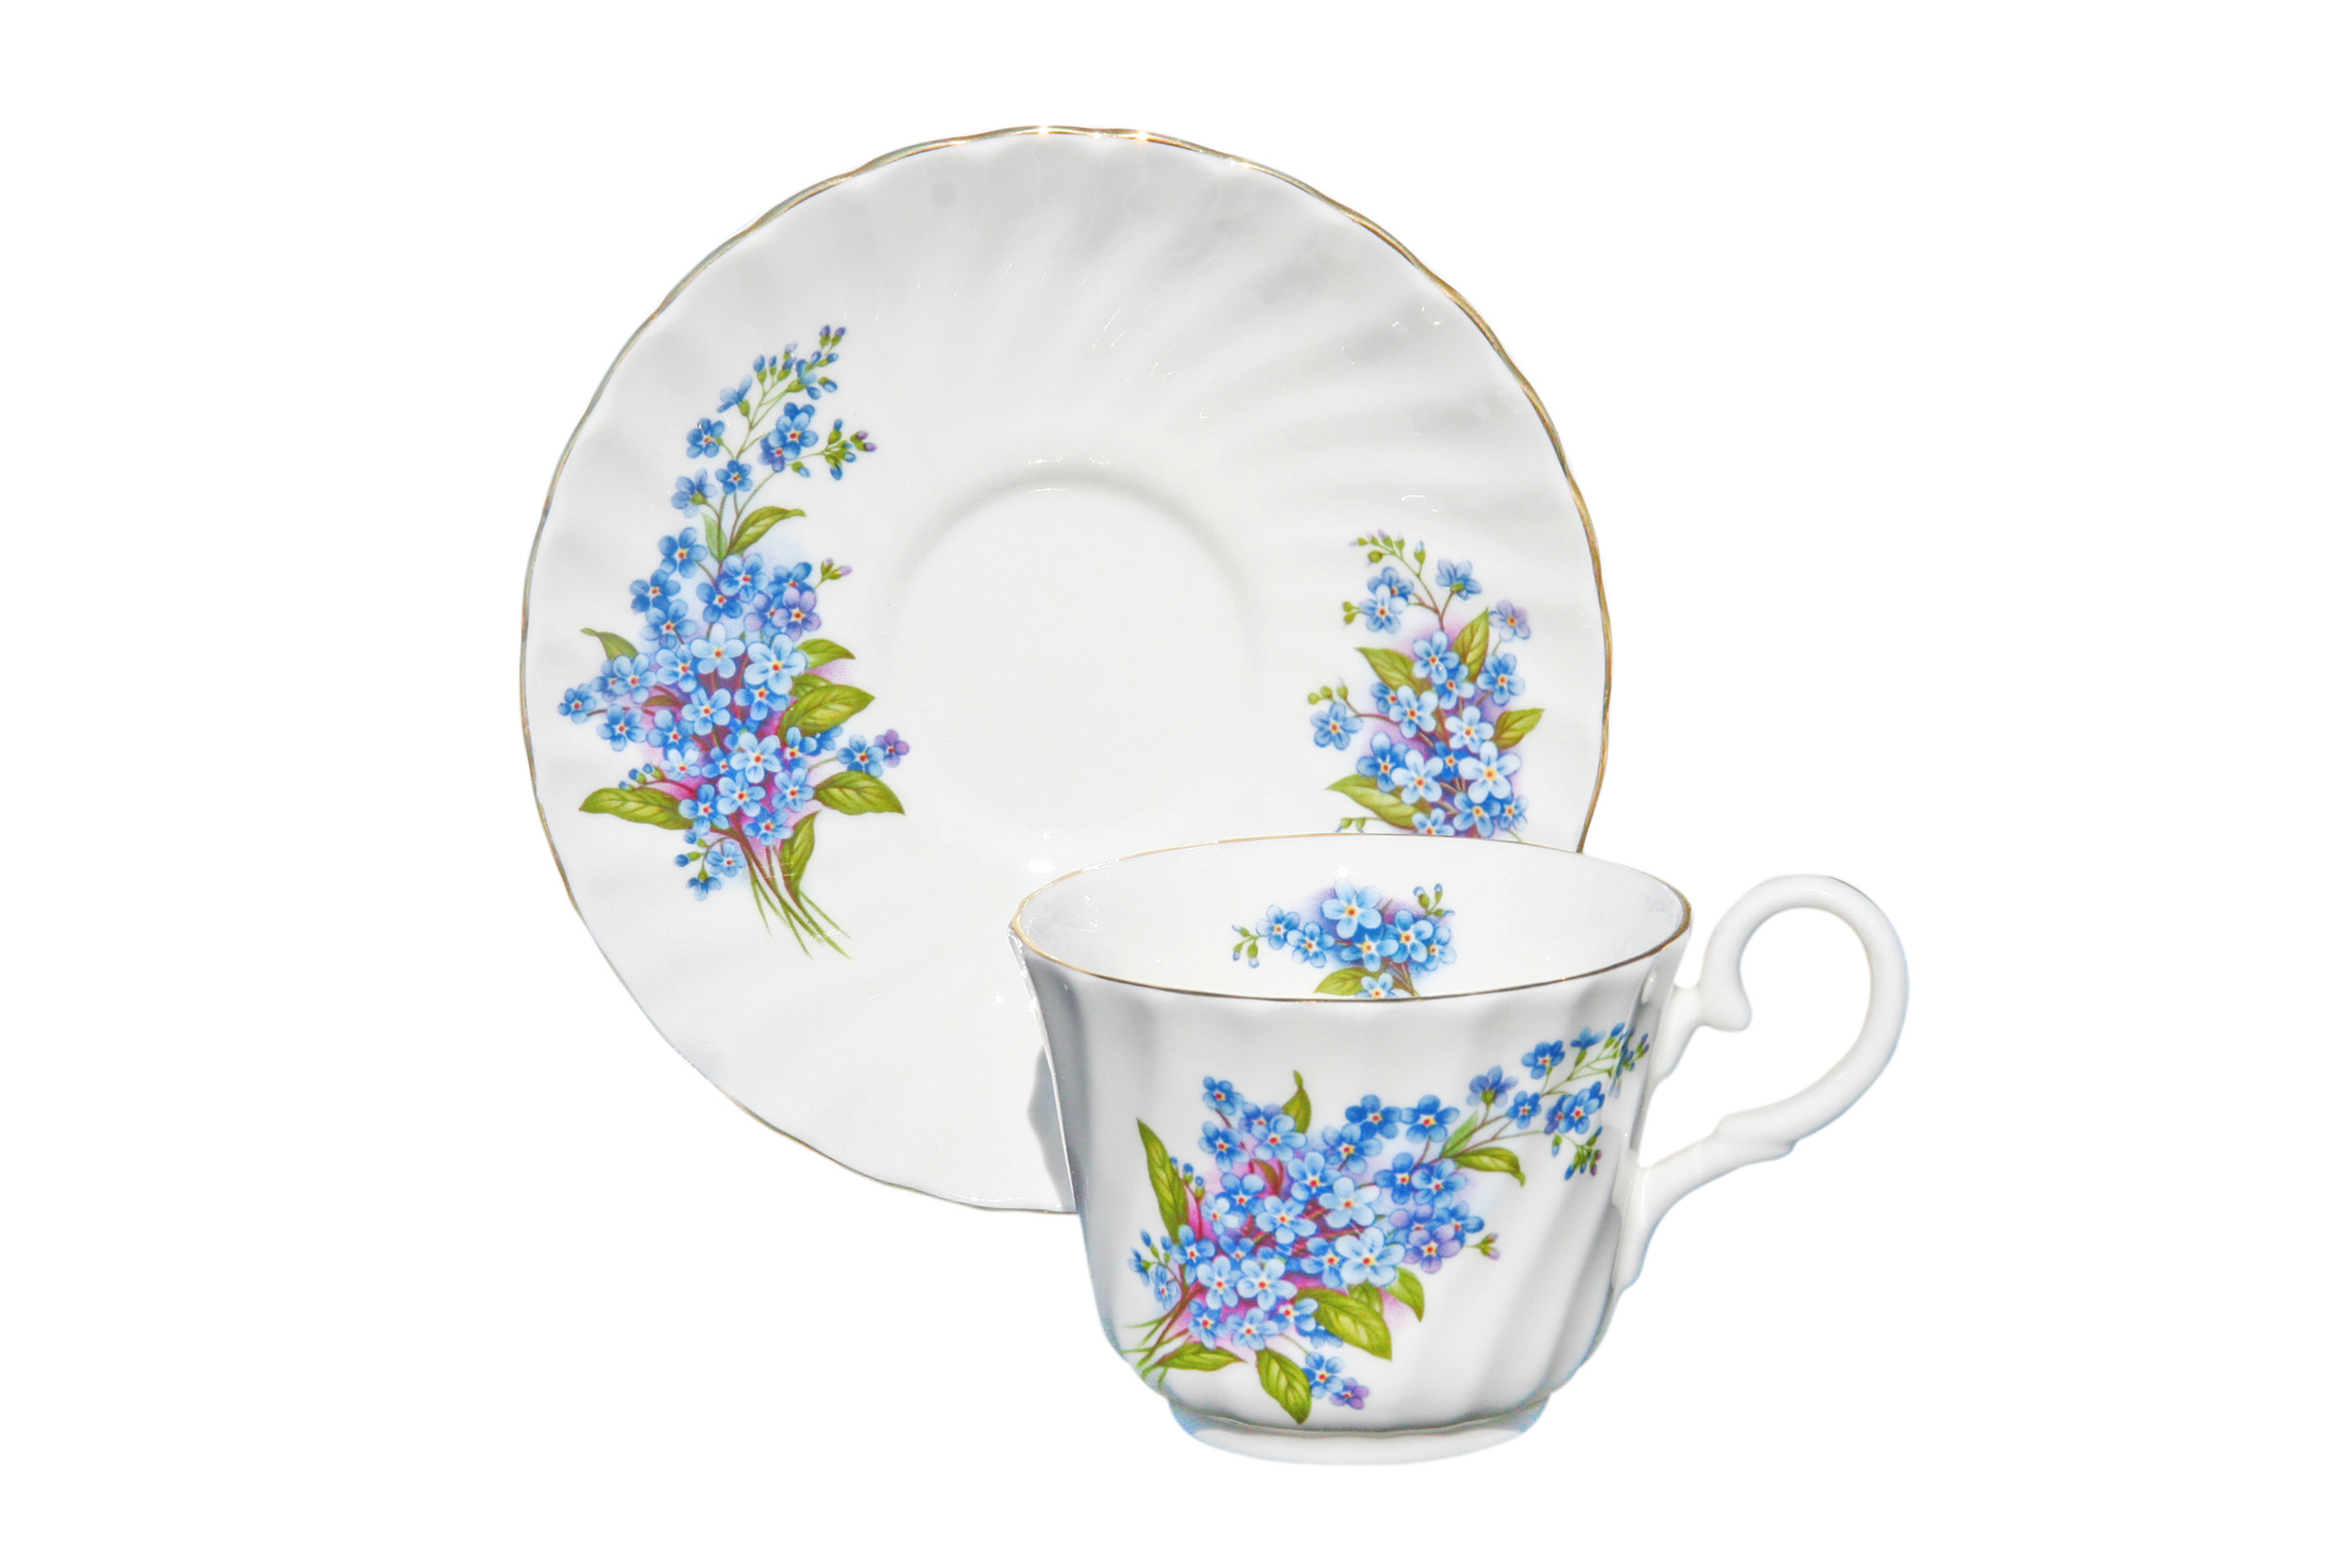 Forget Me Not 1 Cup and Saucer Set